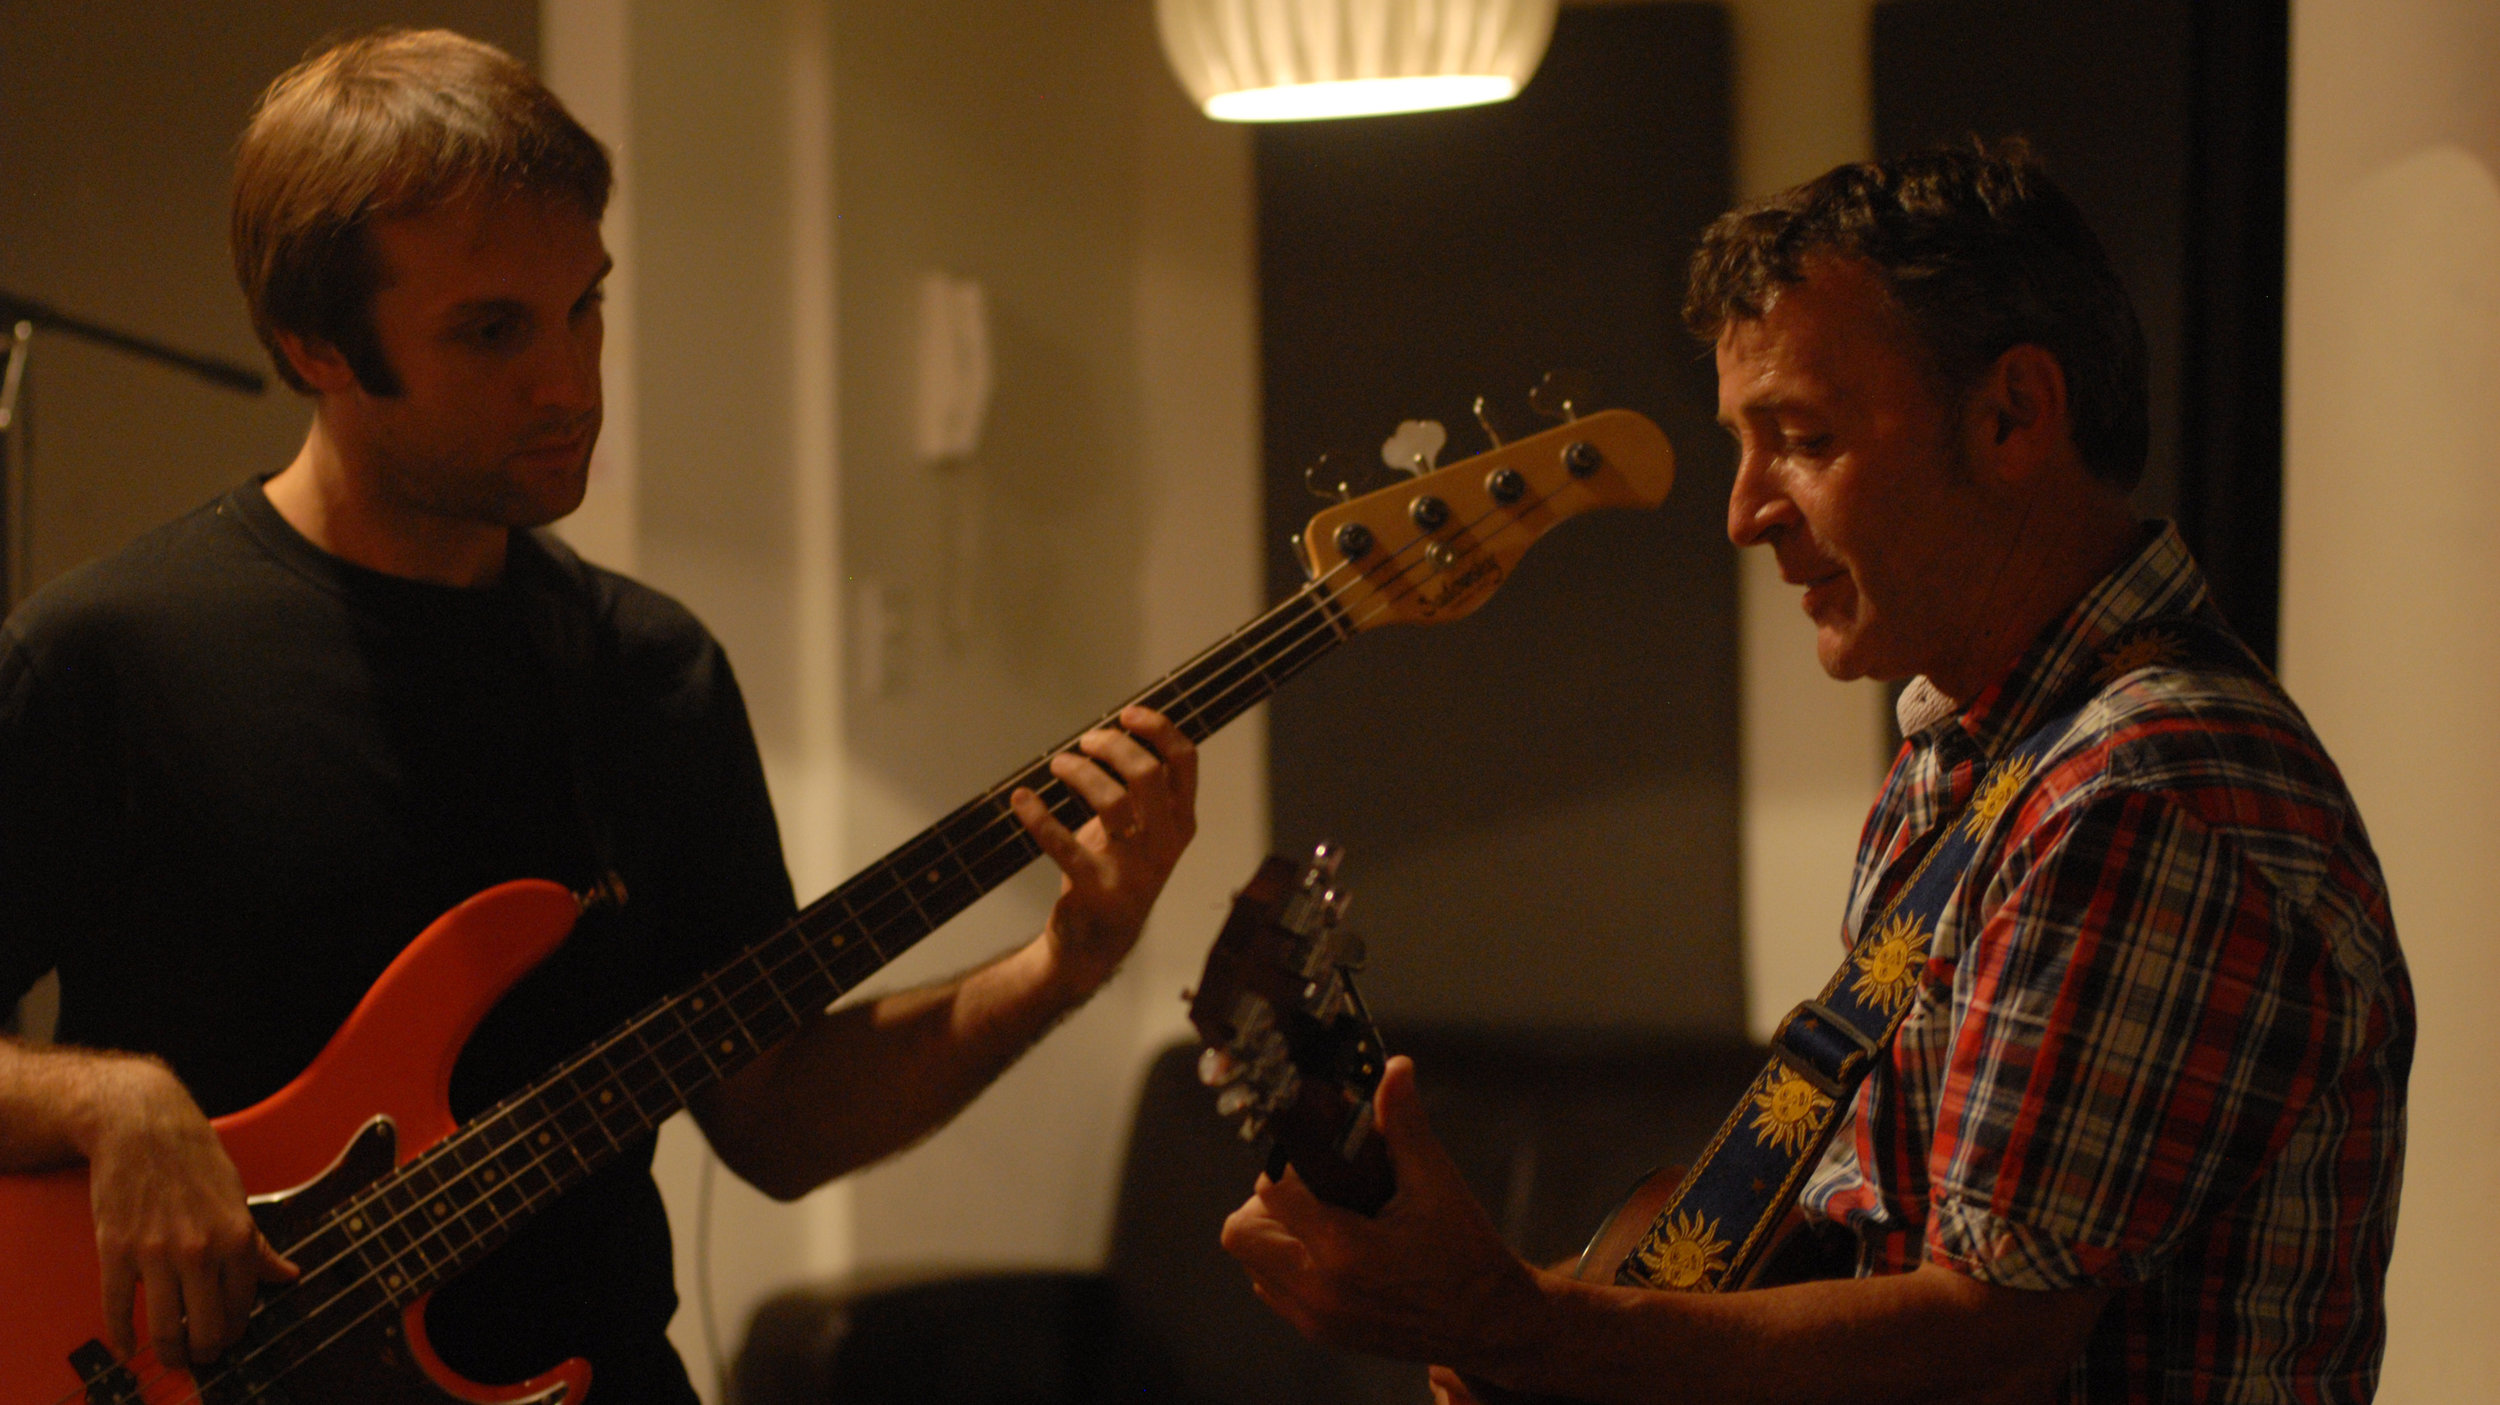 With Darren Lipper - bass